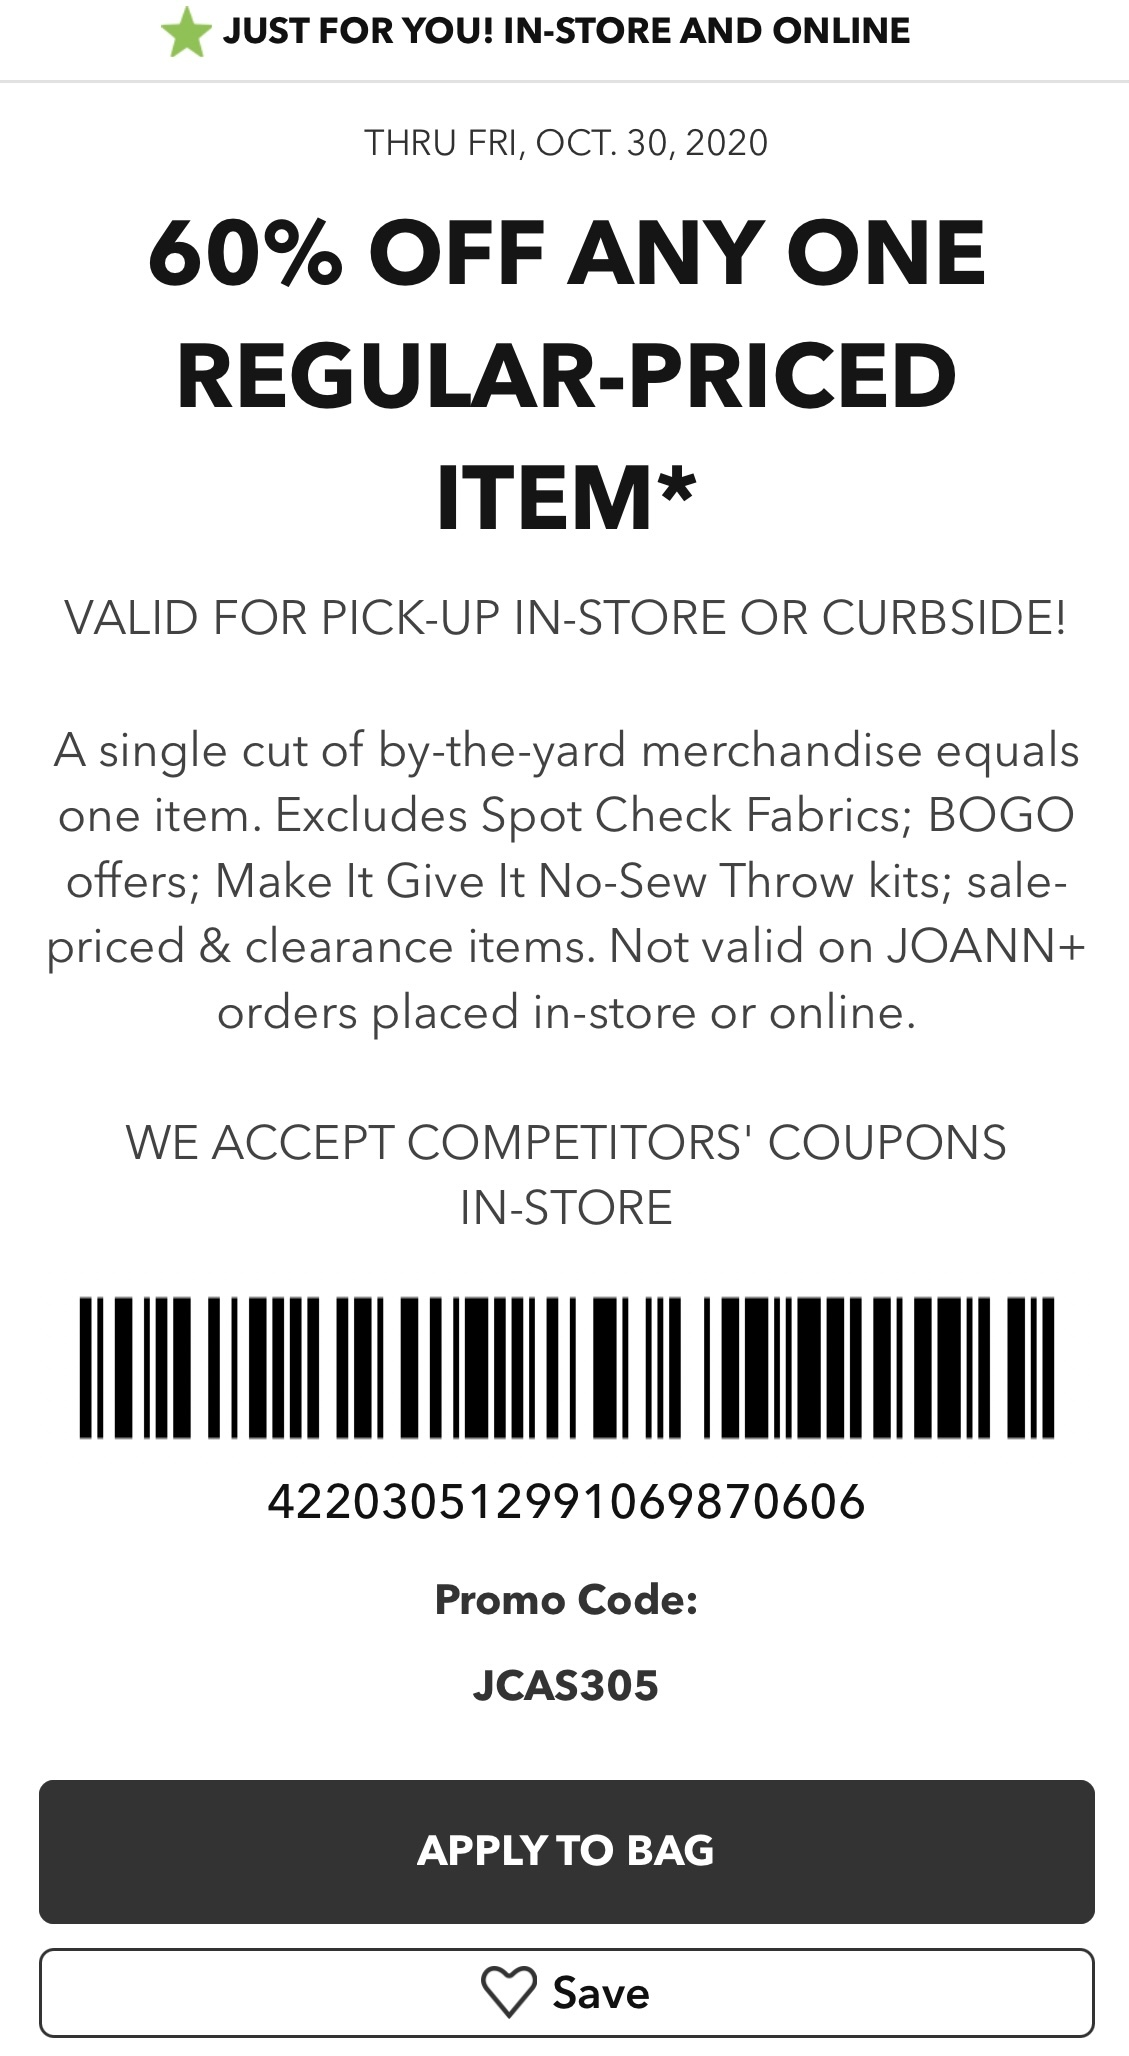 Joann Coupon: 60% Off One Regular Priced Item